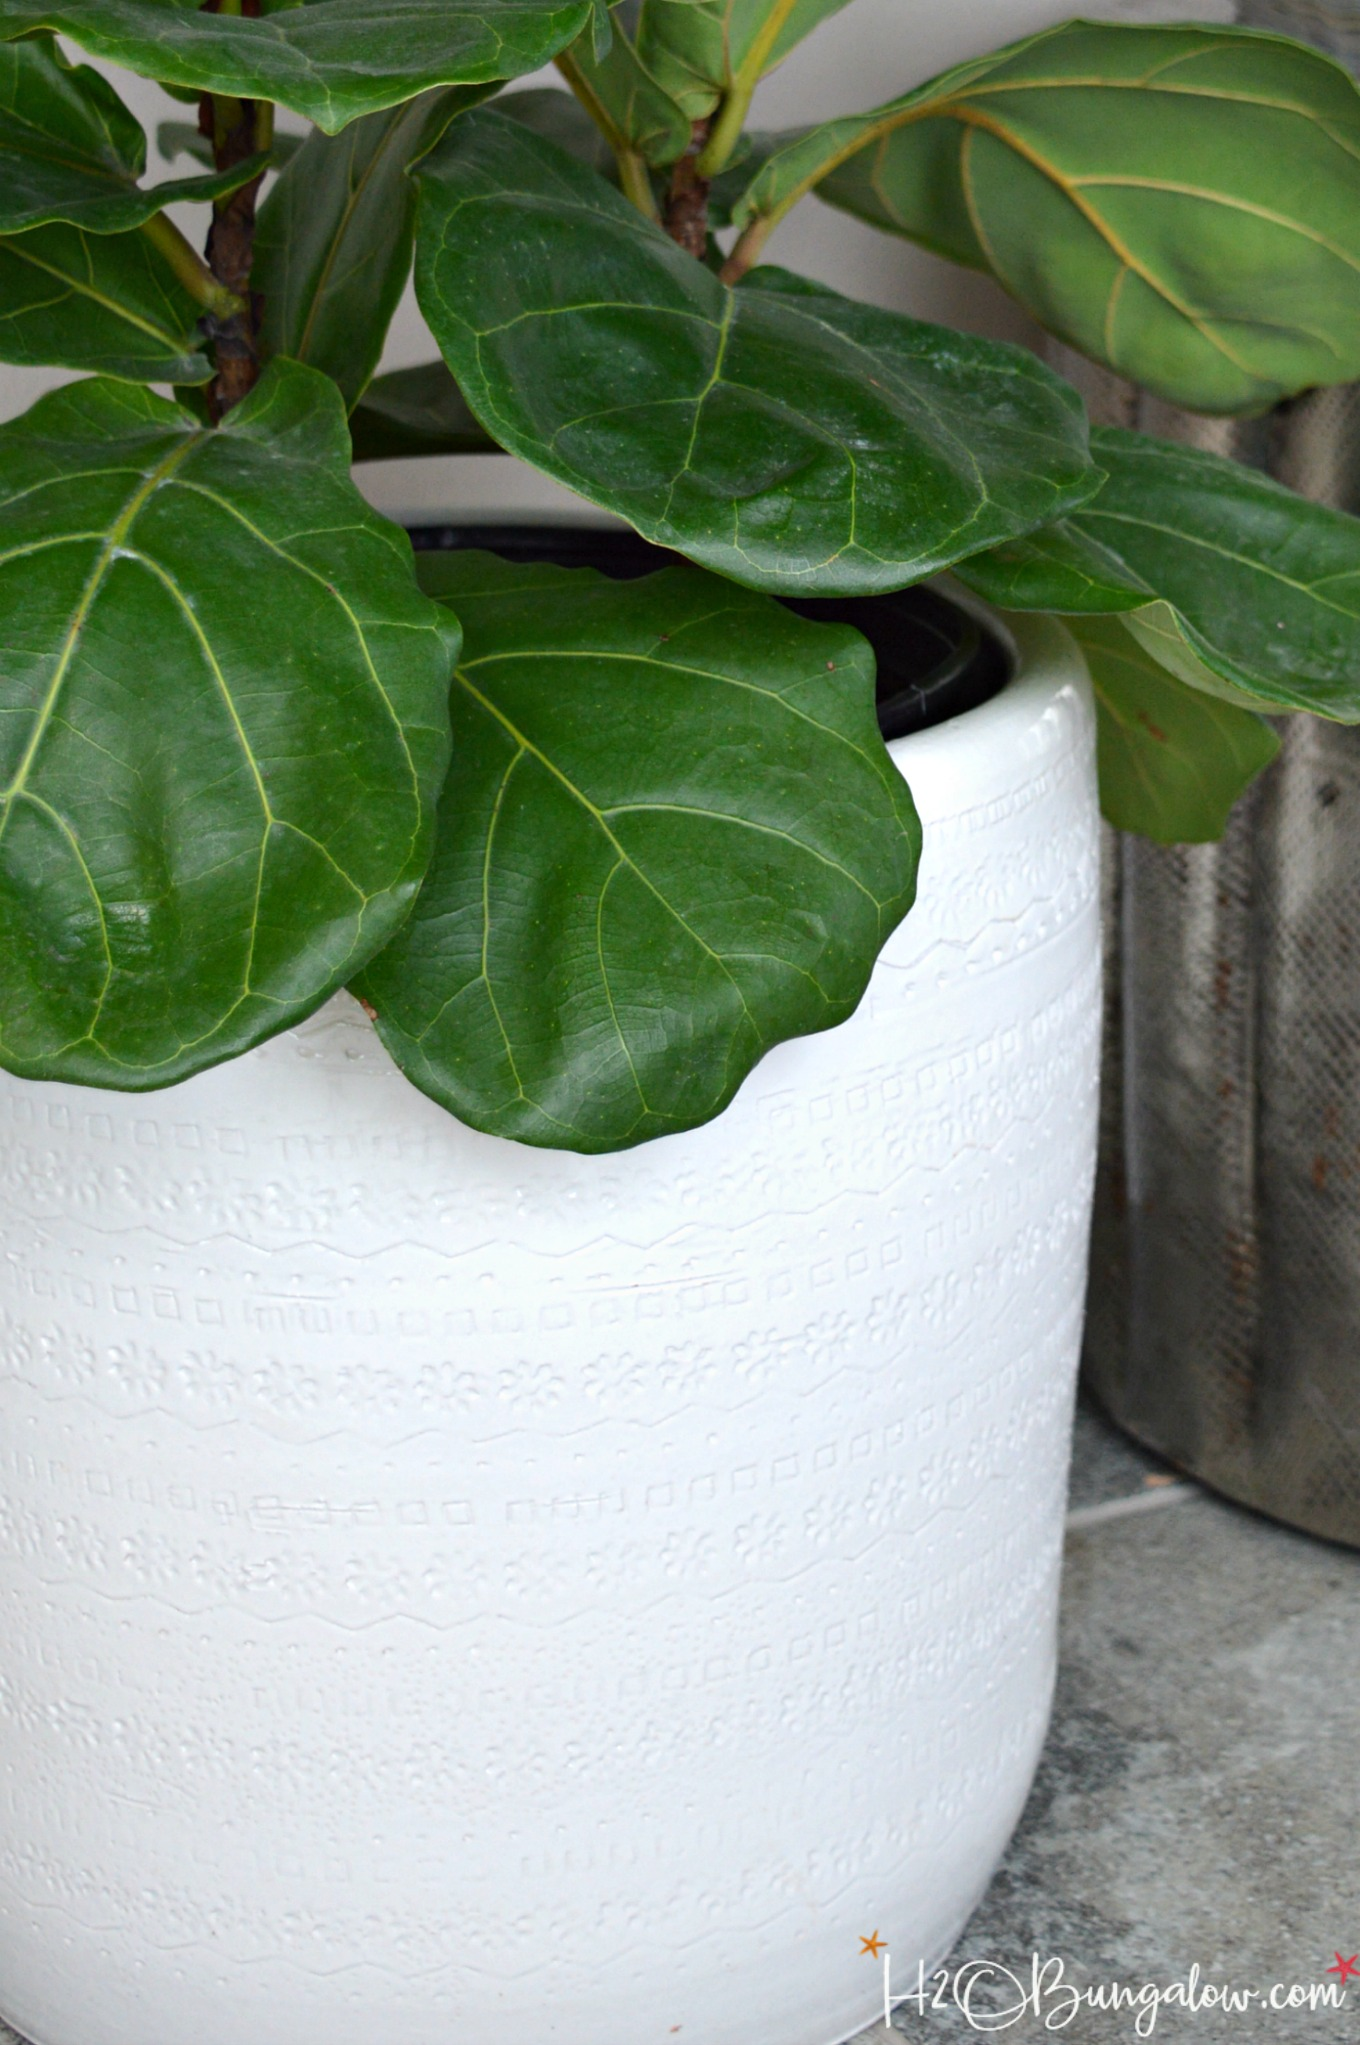 Simple Planters How To Drill Drain Holes In Ceramic Planters H2obungalow